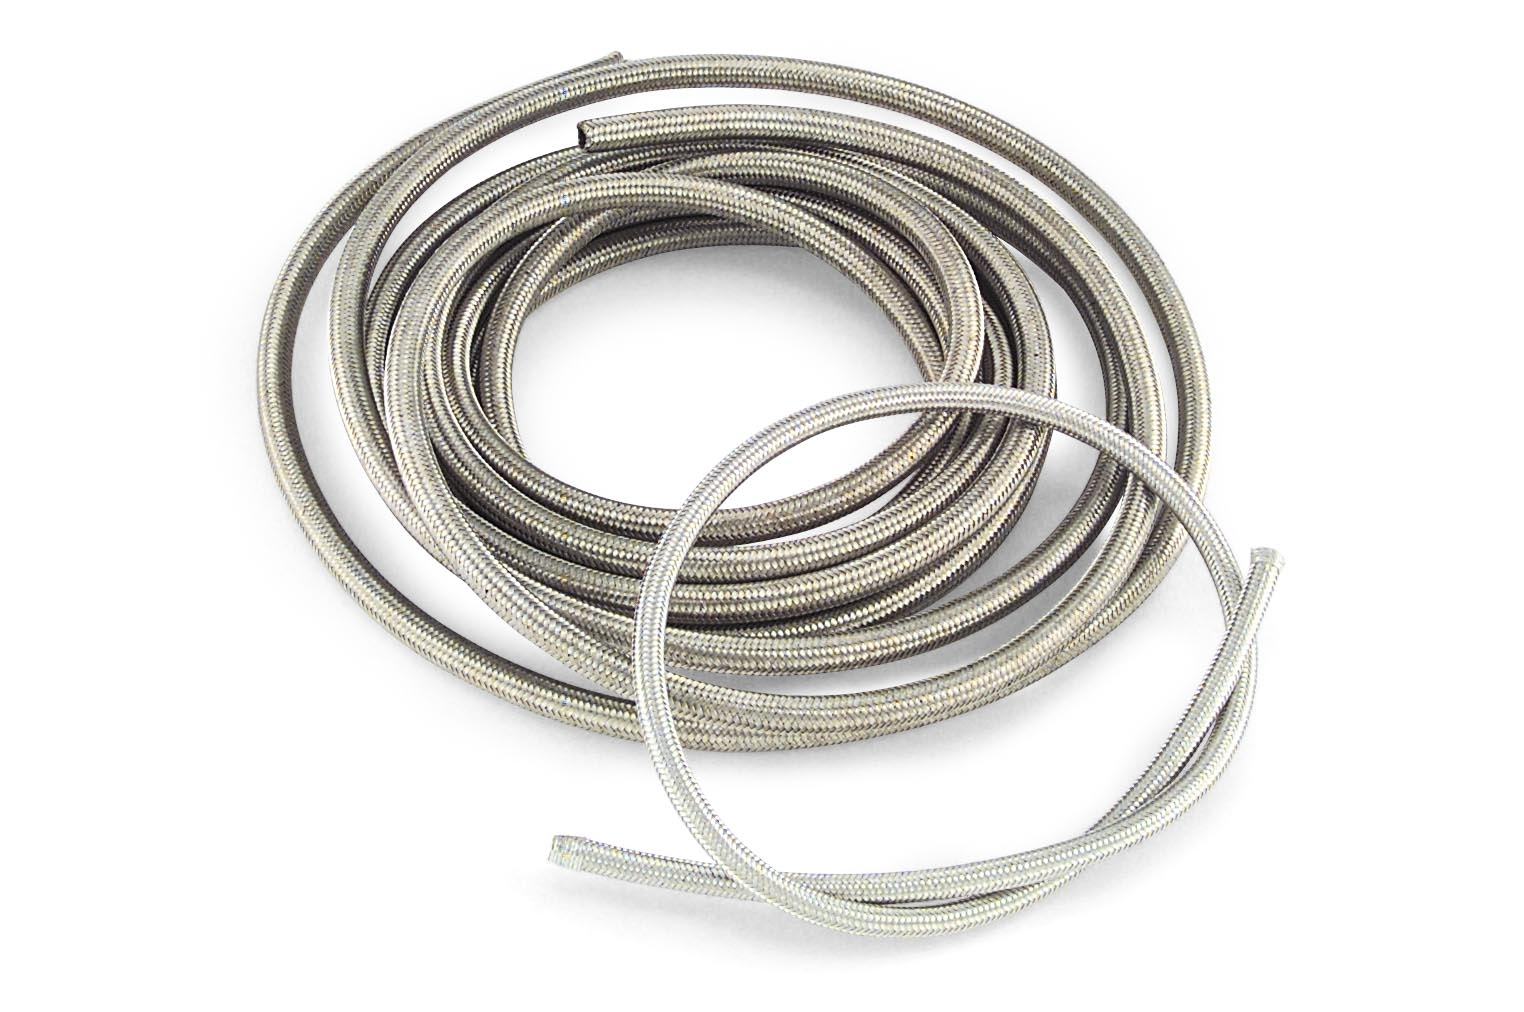 hight resolution of braided steel oil and fuel hose 25 ft roll stainless steel braided hose is easy to cut and fit an improvement in appearance over the more common six wire